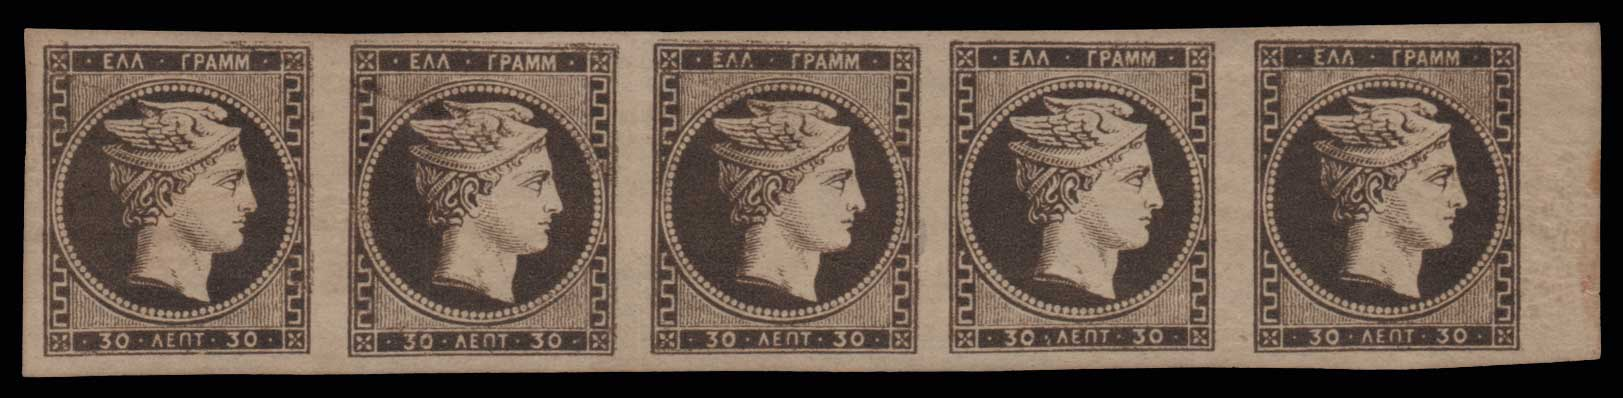 Lot 62 - - FORGERY forgery -  Athens Auctions Public Auction 77 General Stamp Sale